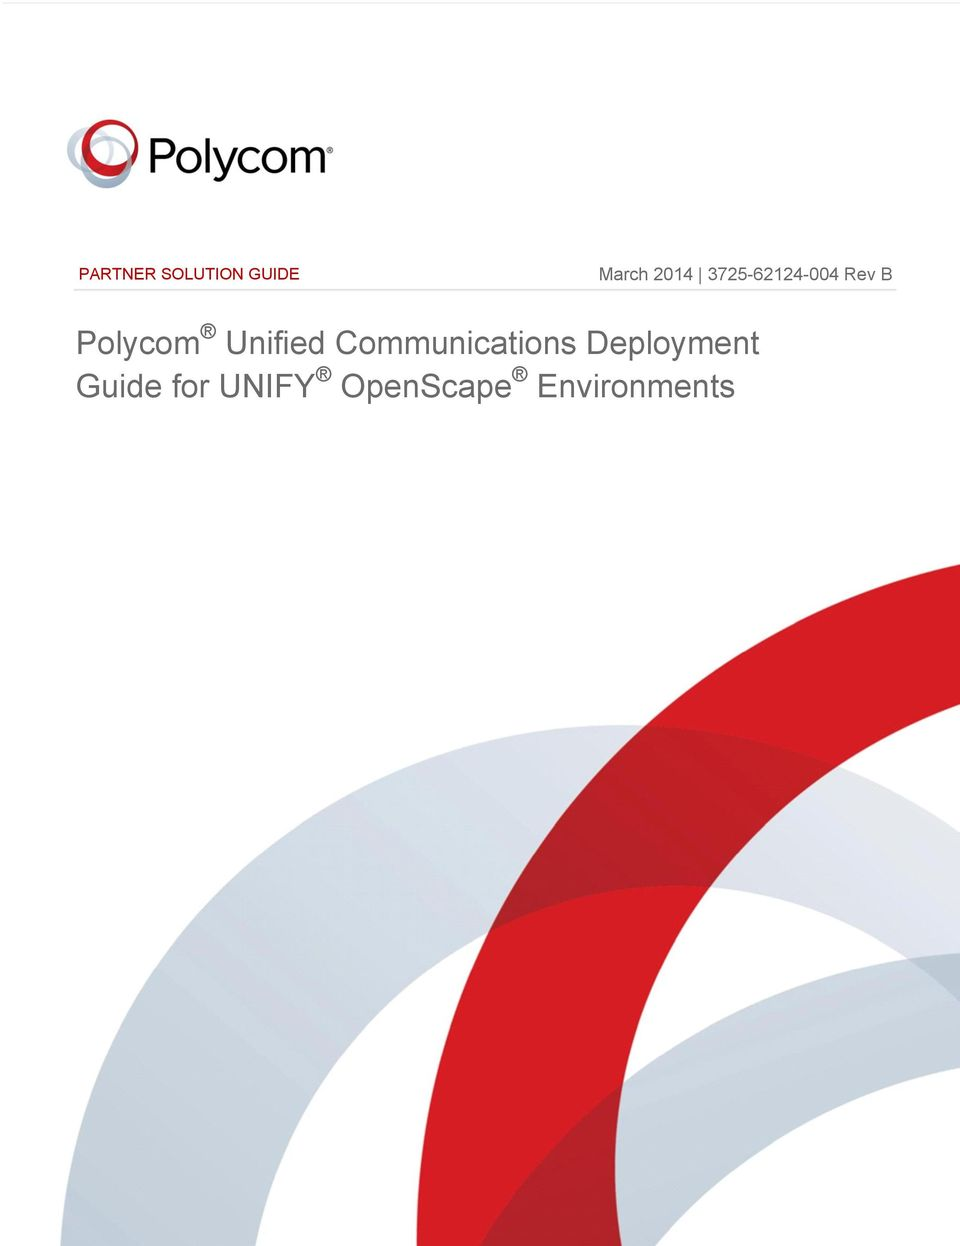 Communications Deployment Guide for